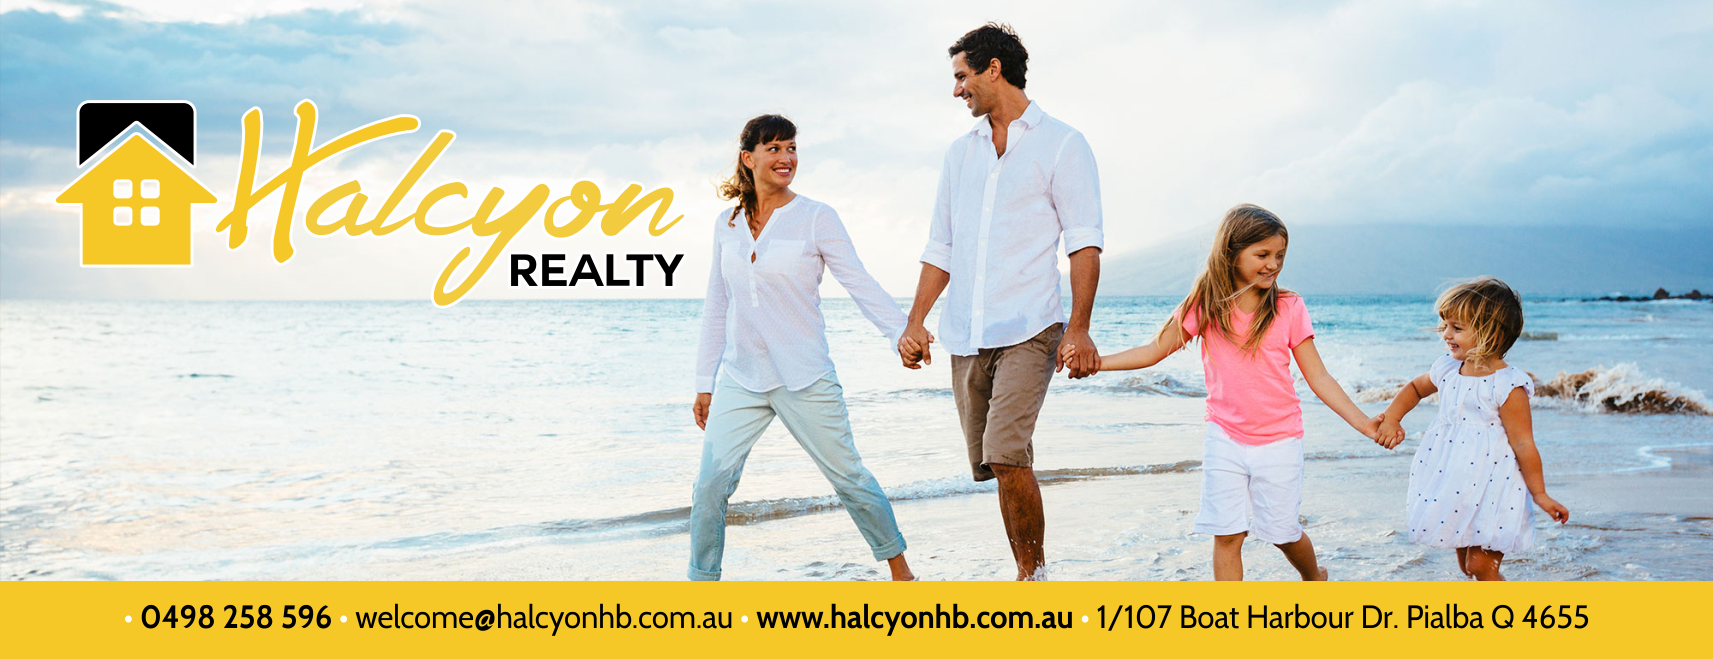 Halcyon Realty Facebook Timeline, Design House, Graphic Design, Print, Printer, Printing, Artwork, Websites, Website Design, Website Development, Hosting, Business Cards, Logos, Billboards, Flyers, Brochures, Vehicle Signage, Signage, Social Media, Facebook, Hervey Bay, Maryborough, Fraser Coast, Queensland, Brisbane, Sunshine Coast